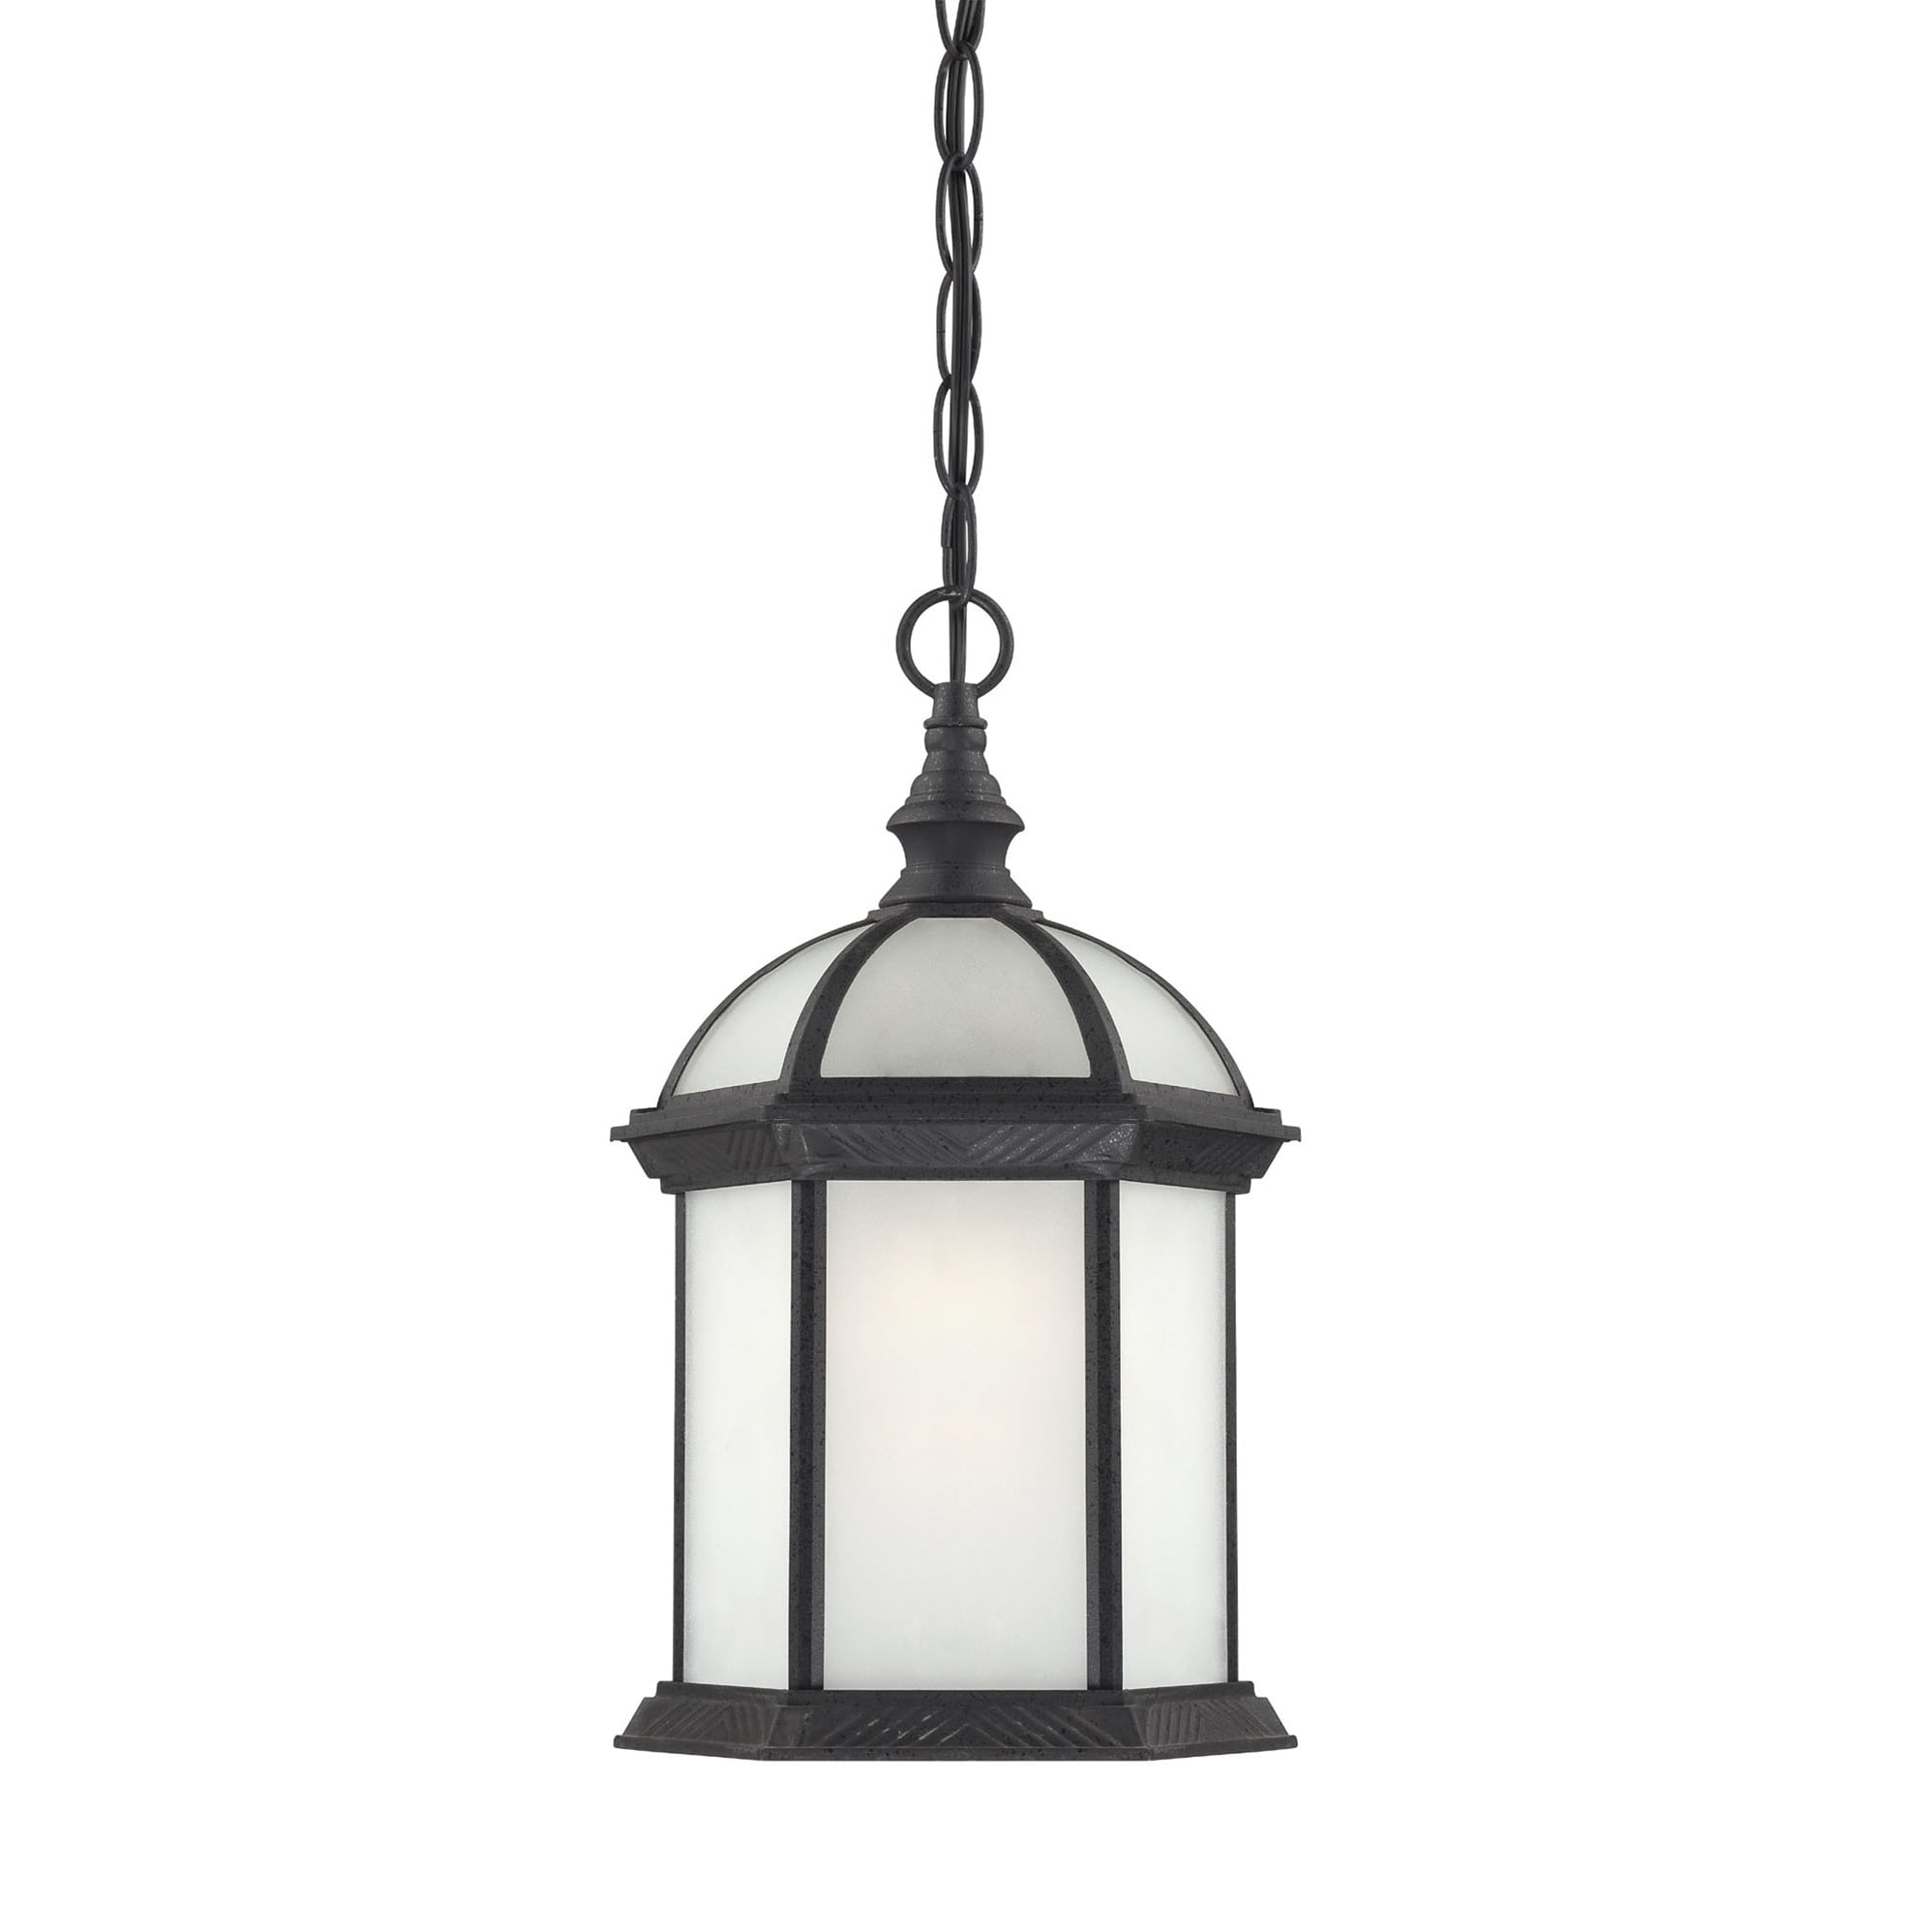 Nuvo Boxwood 1-light Textured Black 13-inch Hanging Fixture